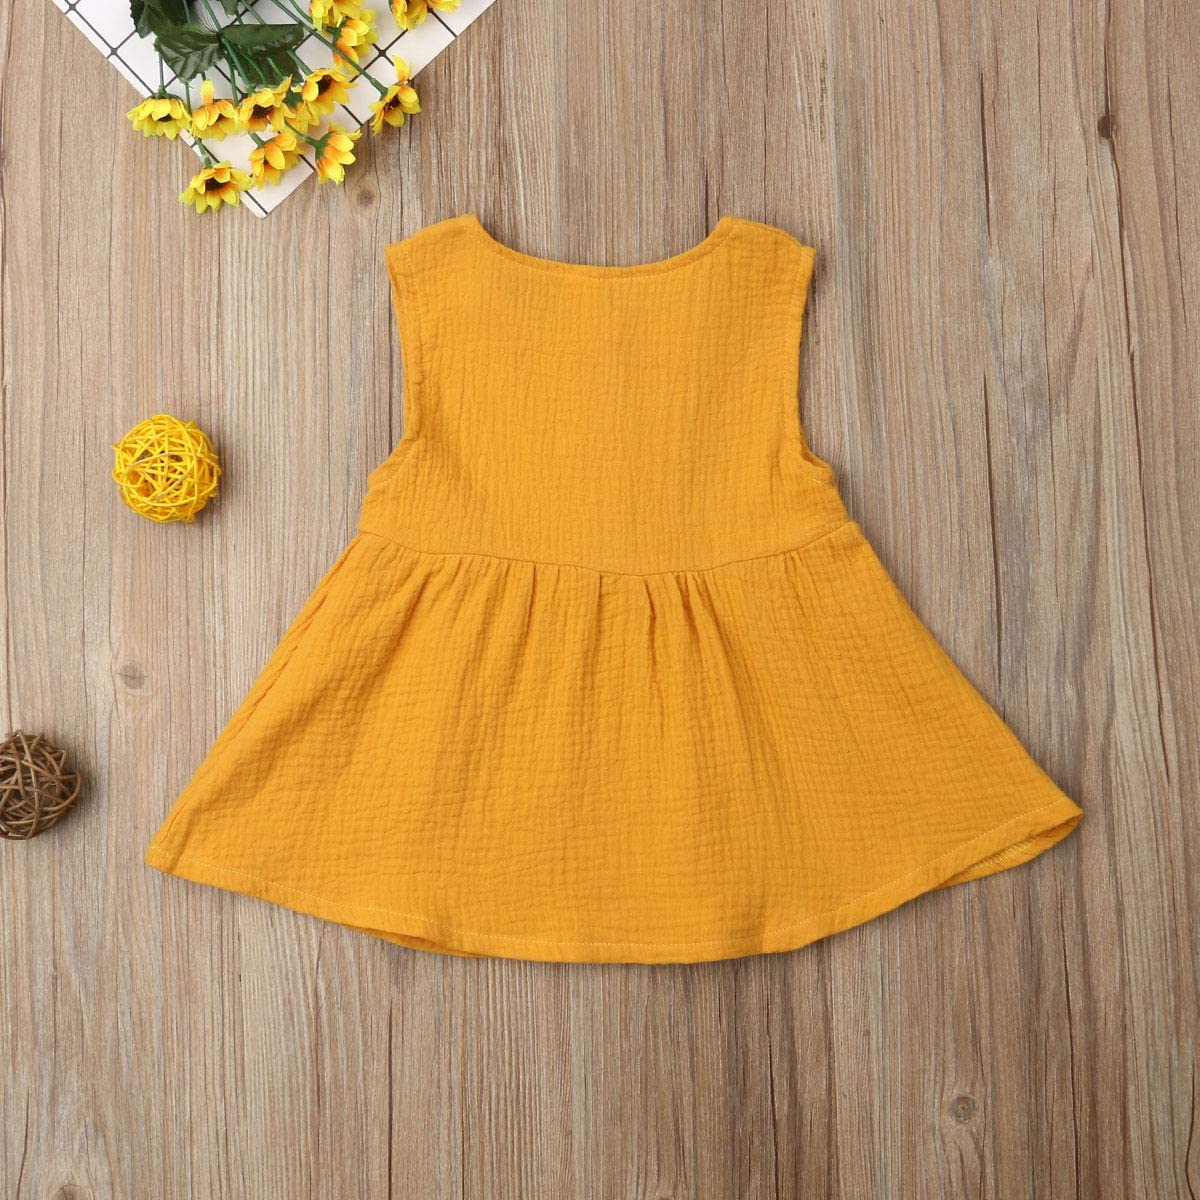 Karuedoo Toddler Baby Girls Cotton Sleeveless Button Princess Playwear Casual Dress